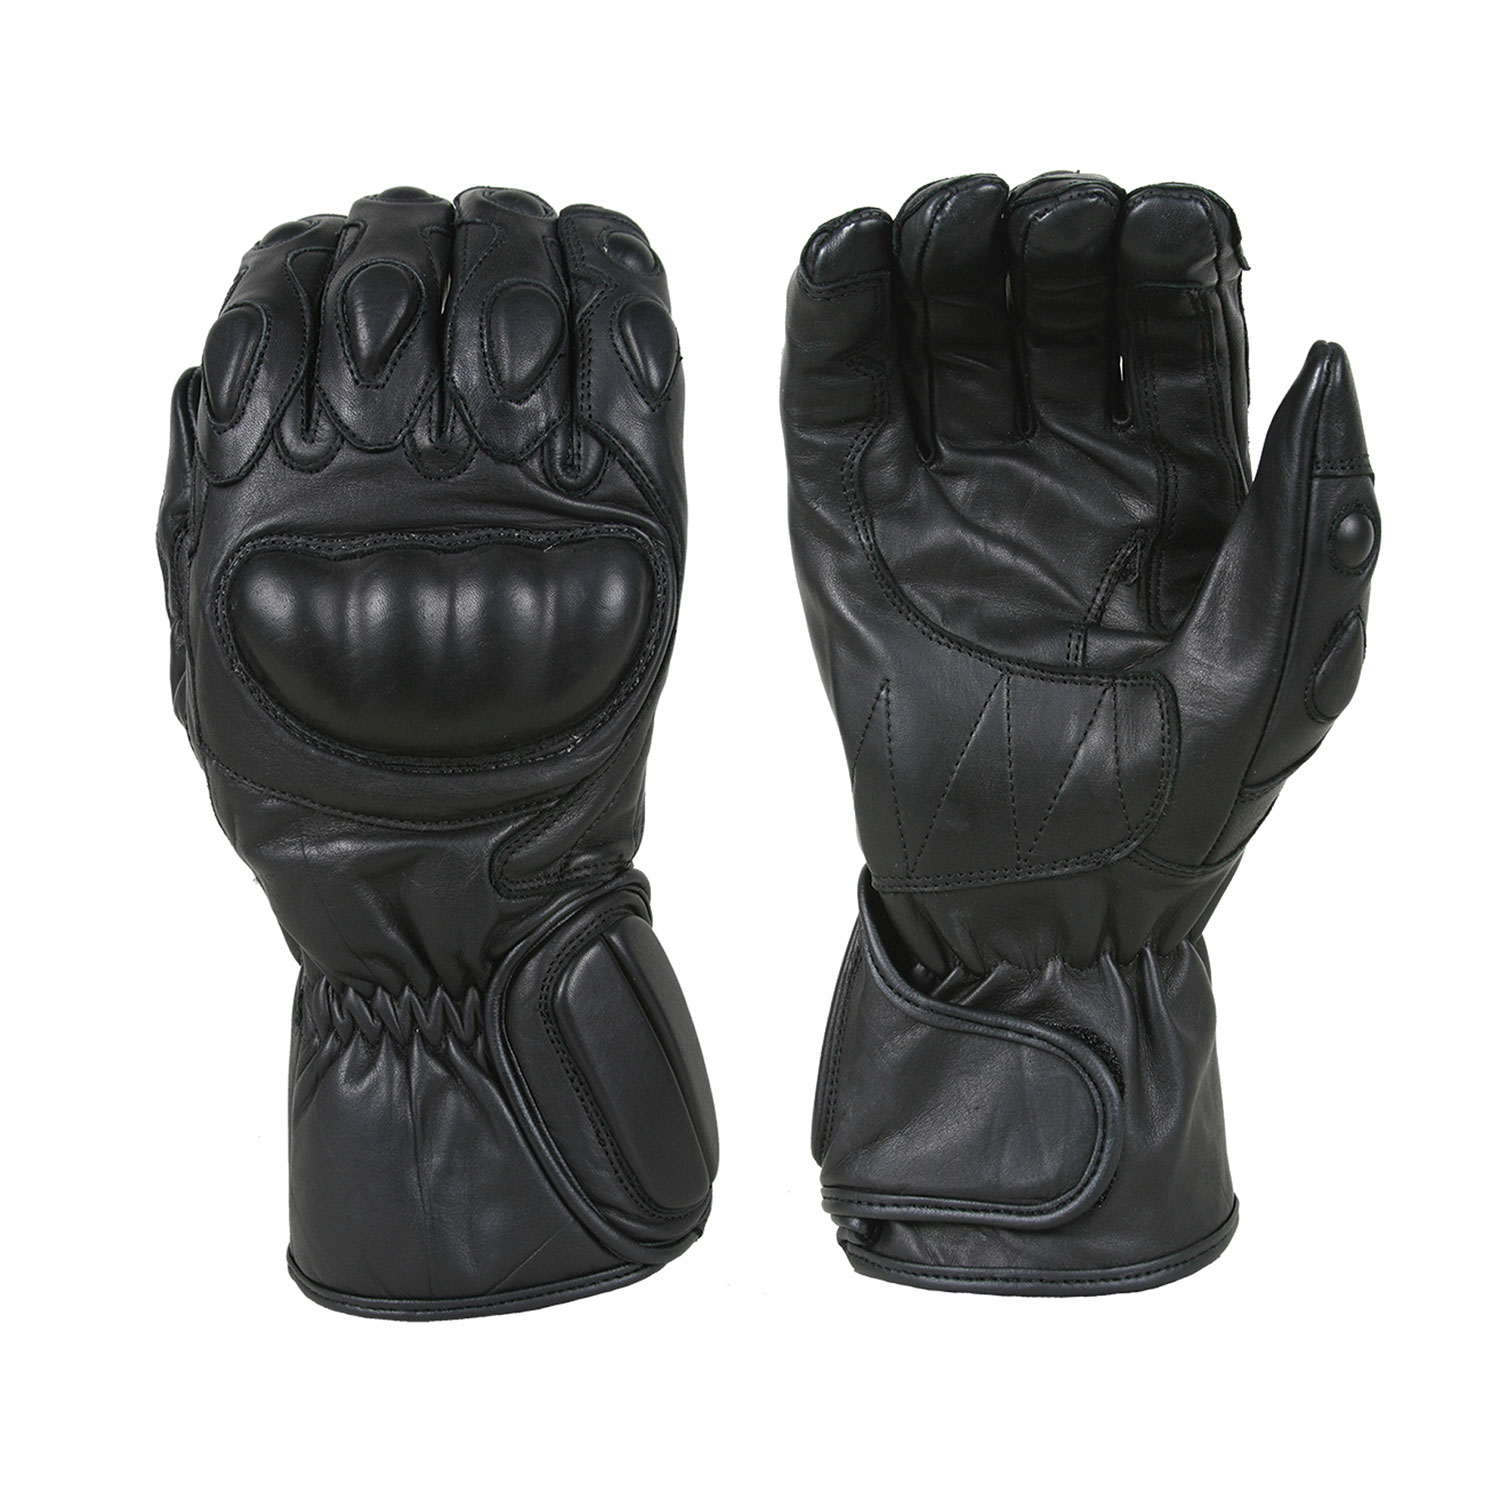 Damascus Vector 1 Riot Control Gloves